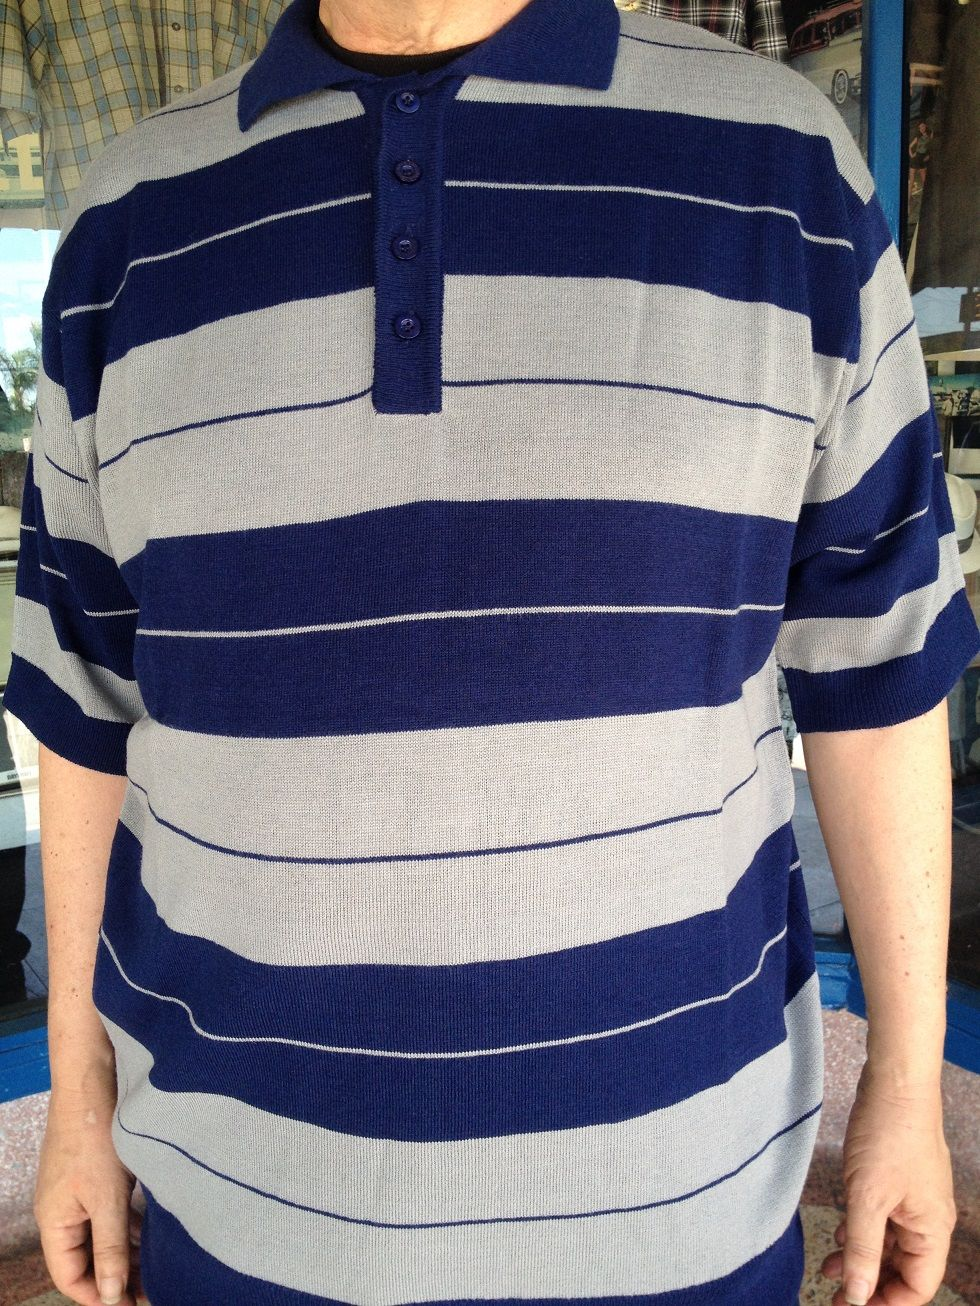 reputable site 98ce7 b2e79 Striped Charlie Brown cholo polo knit acrylic shirts, color navy blue with  gray, by Lowrider. They are the classic bumblebee style shirts worn in  barrios ...